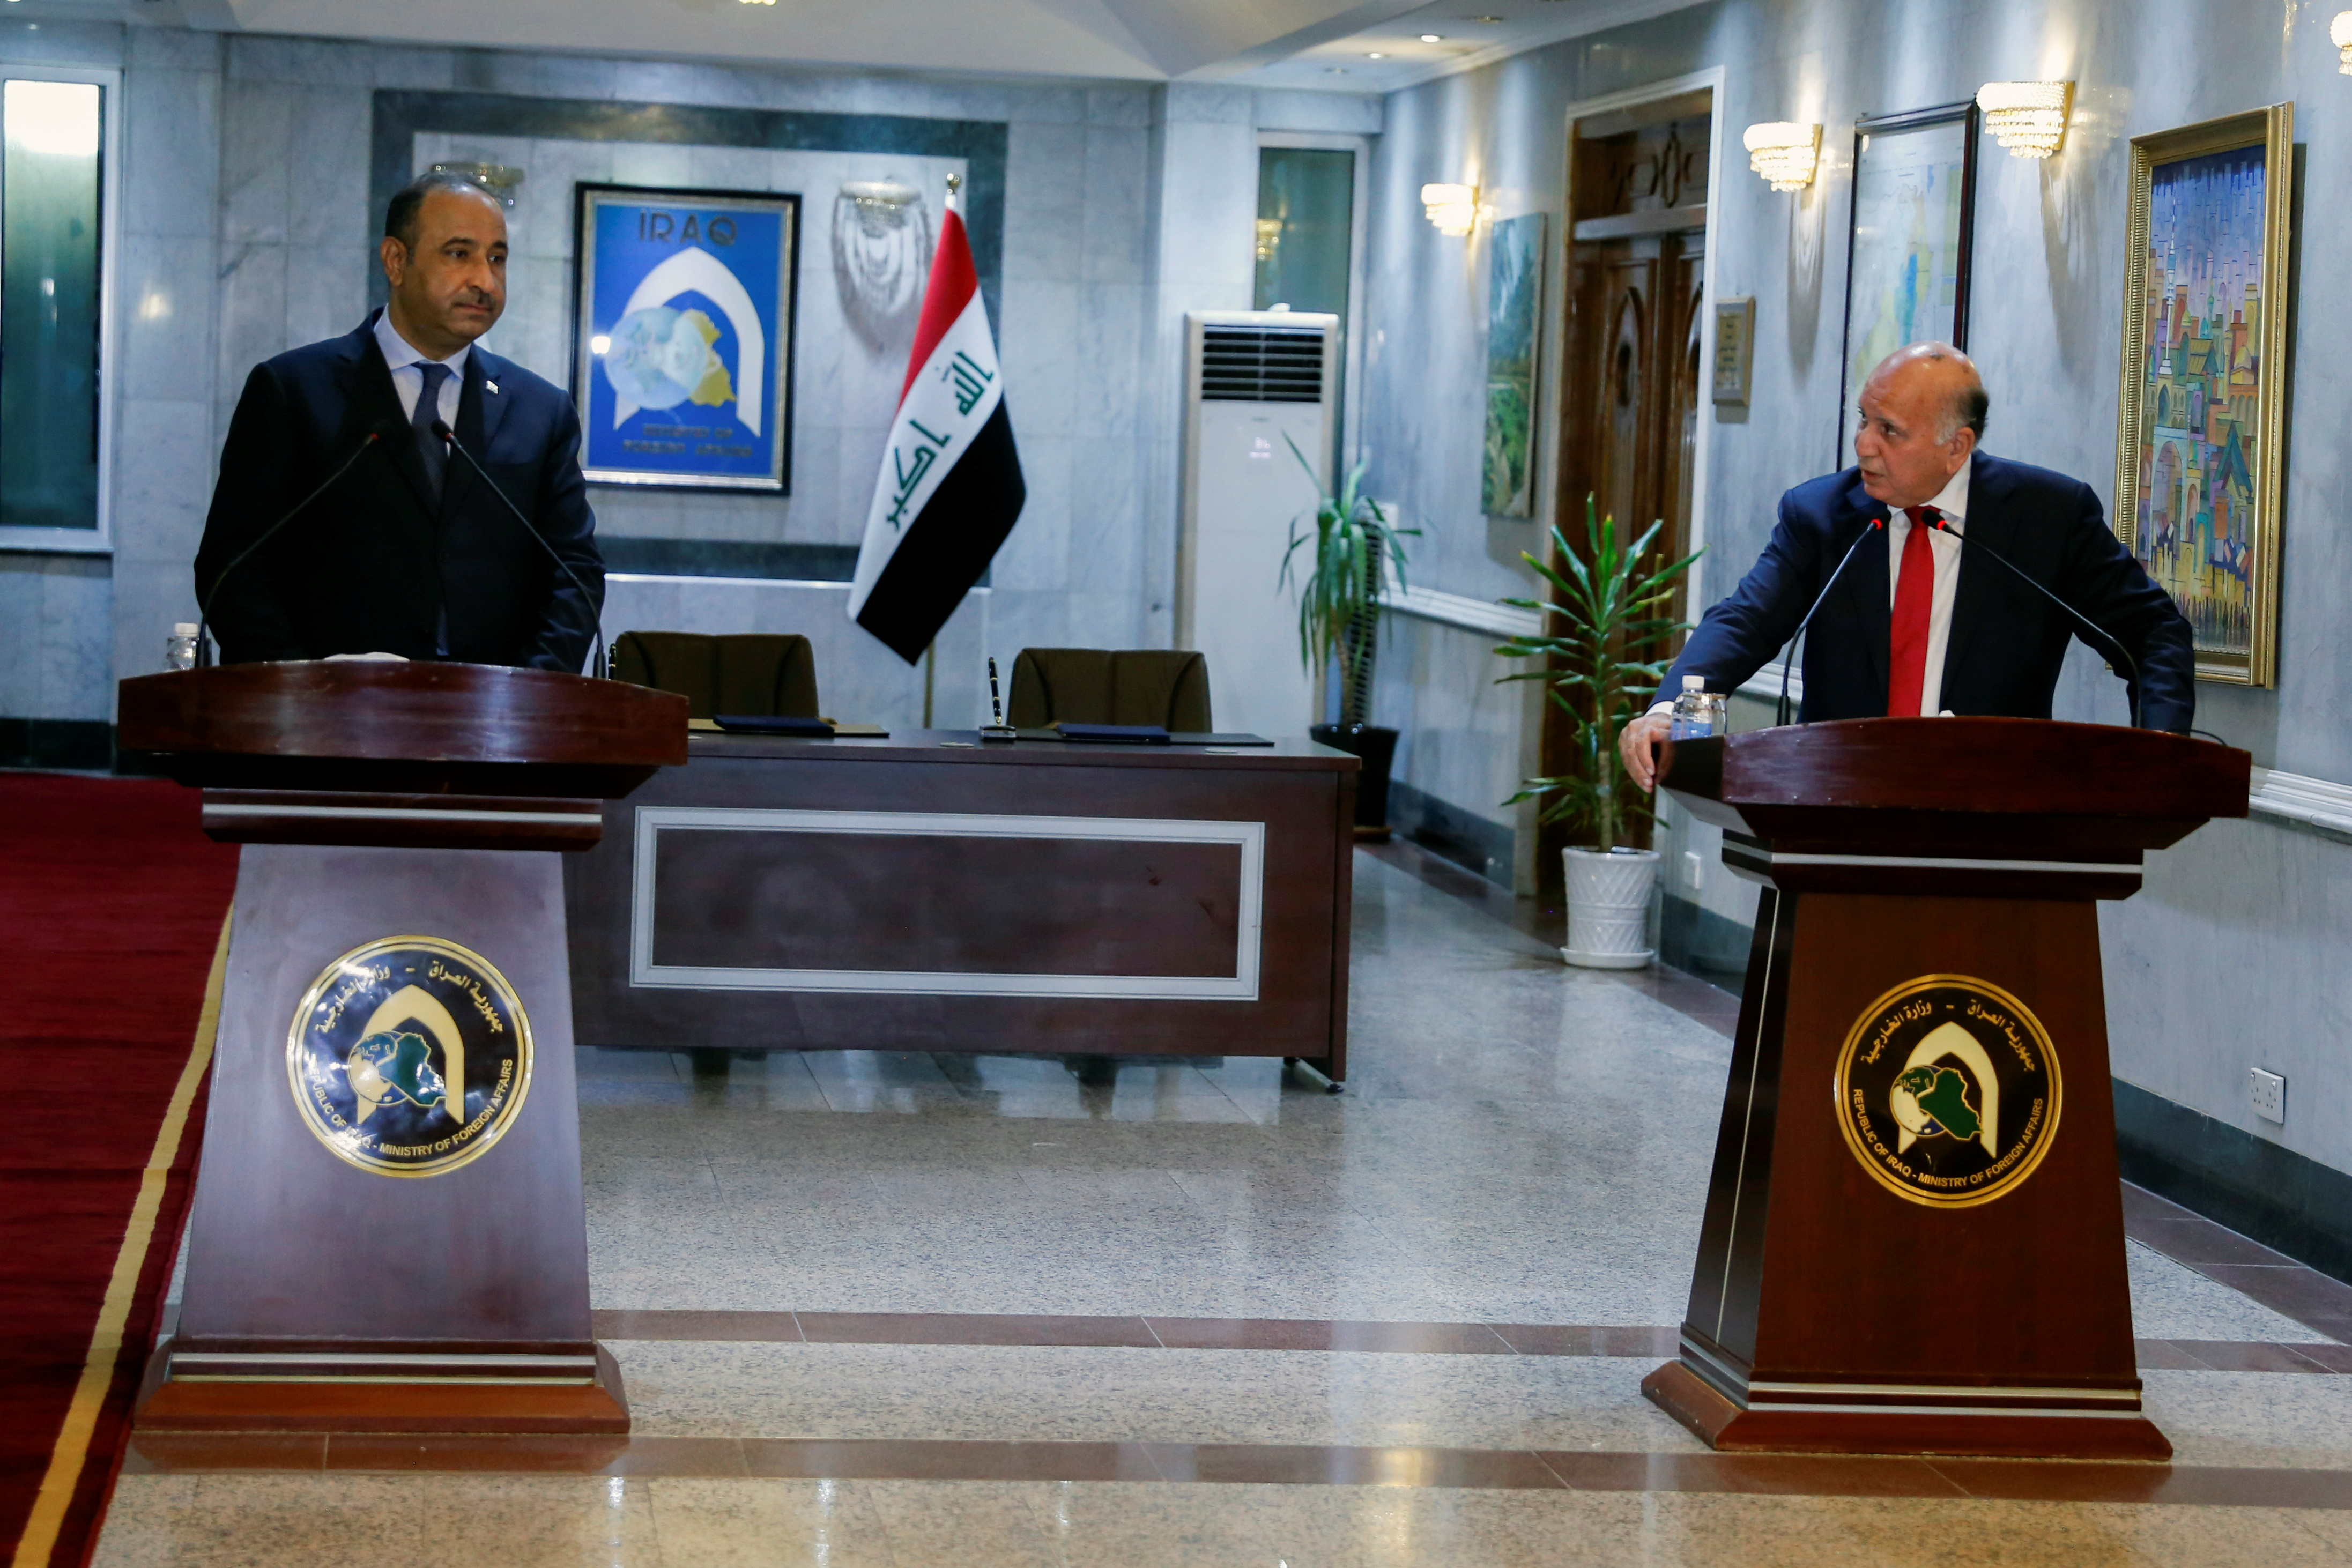 Iraqi Foreign Minister Fouad Hussein speaks with Iraqi Culture Minister Hassan Nadhim during a news conference at the Ministry of Foreign Affairs in Baghdad, Iraq August 3, 2021. REUTERS/Saba Kareem